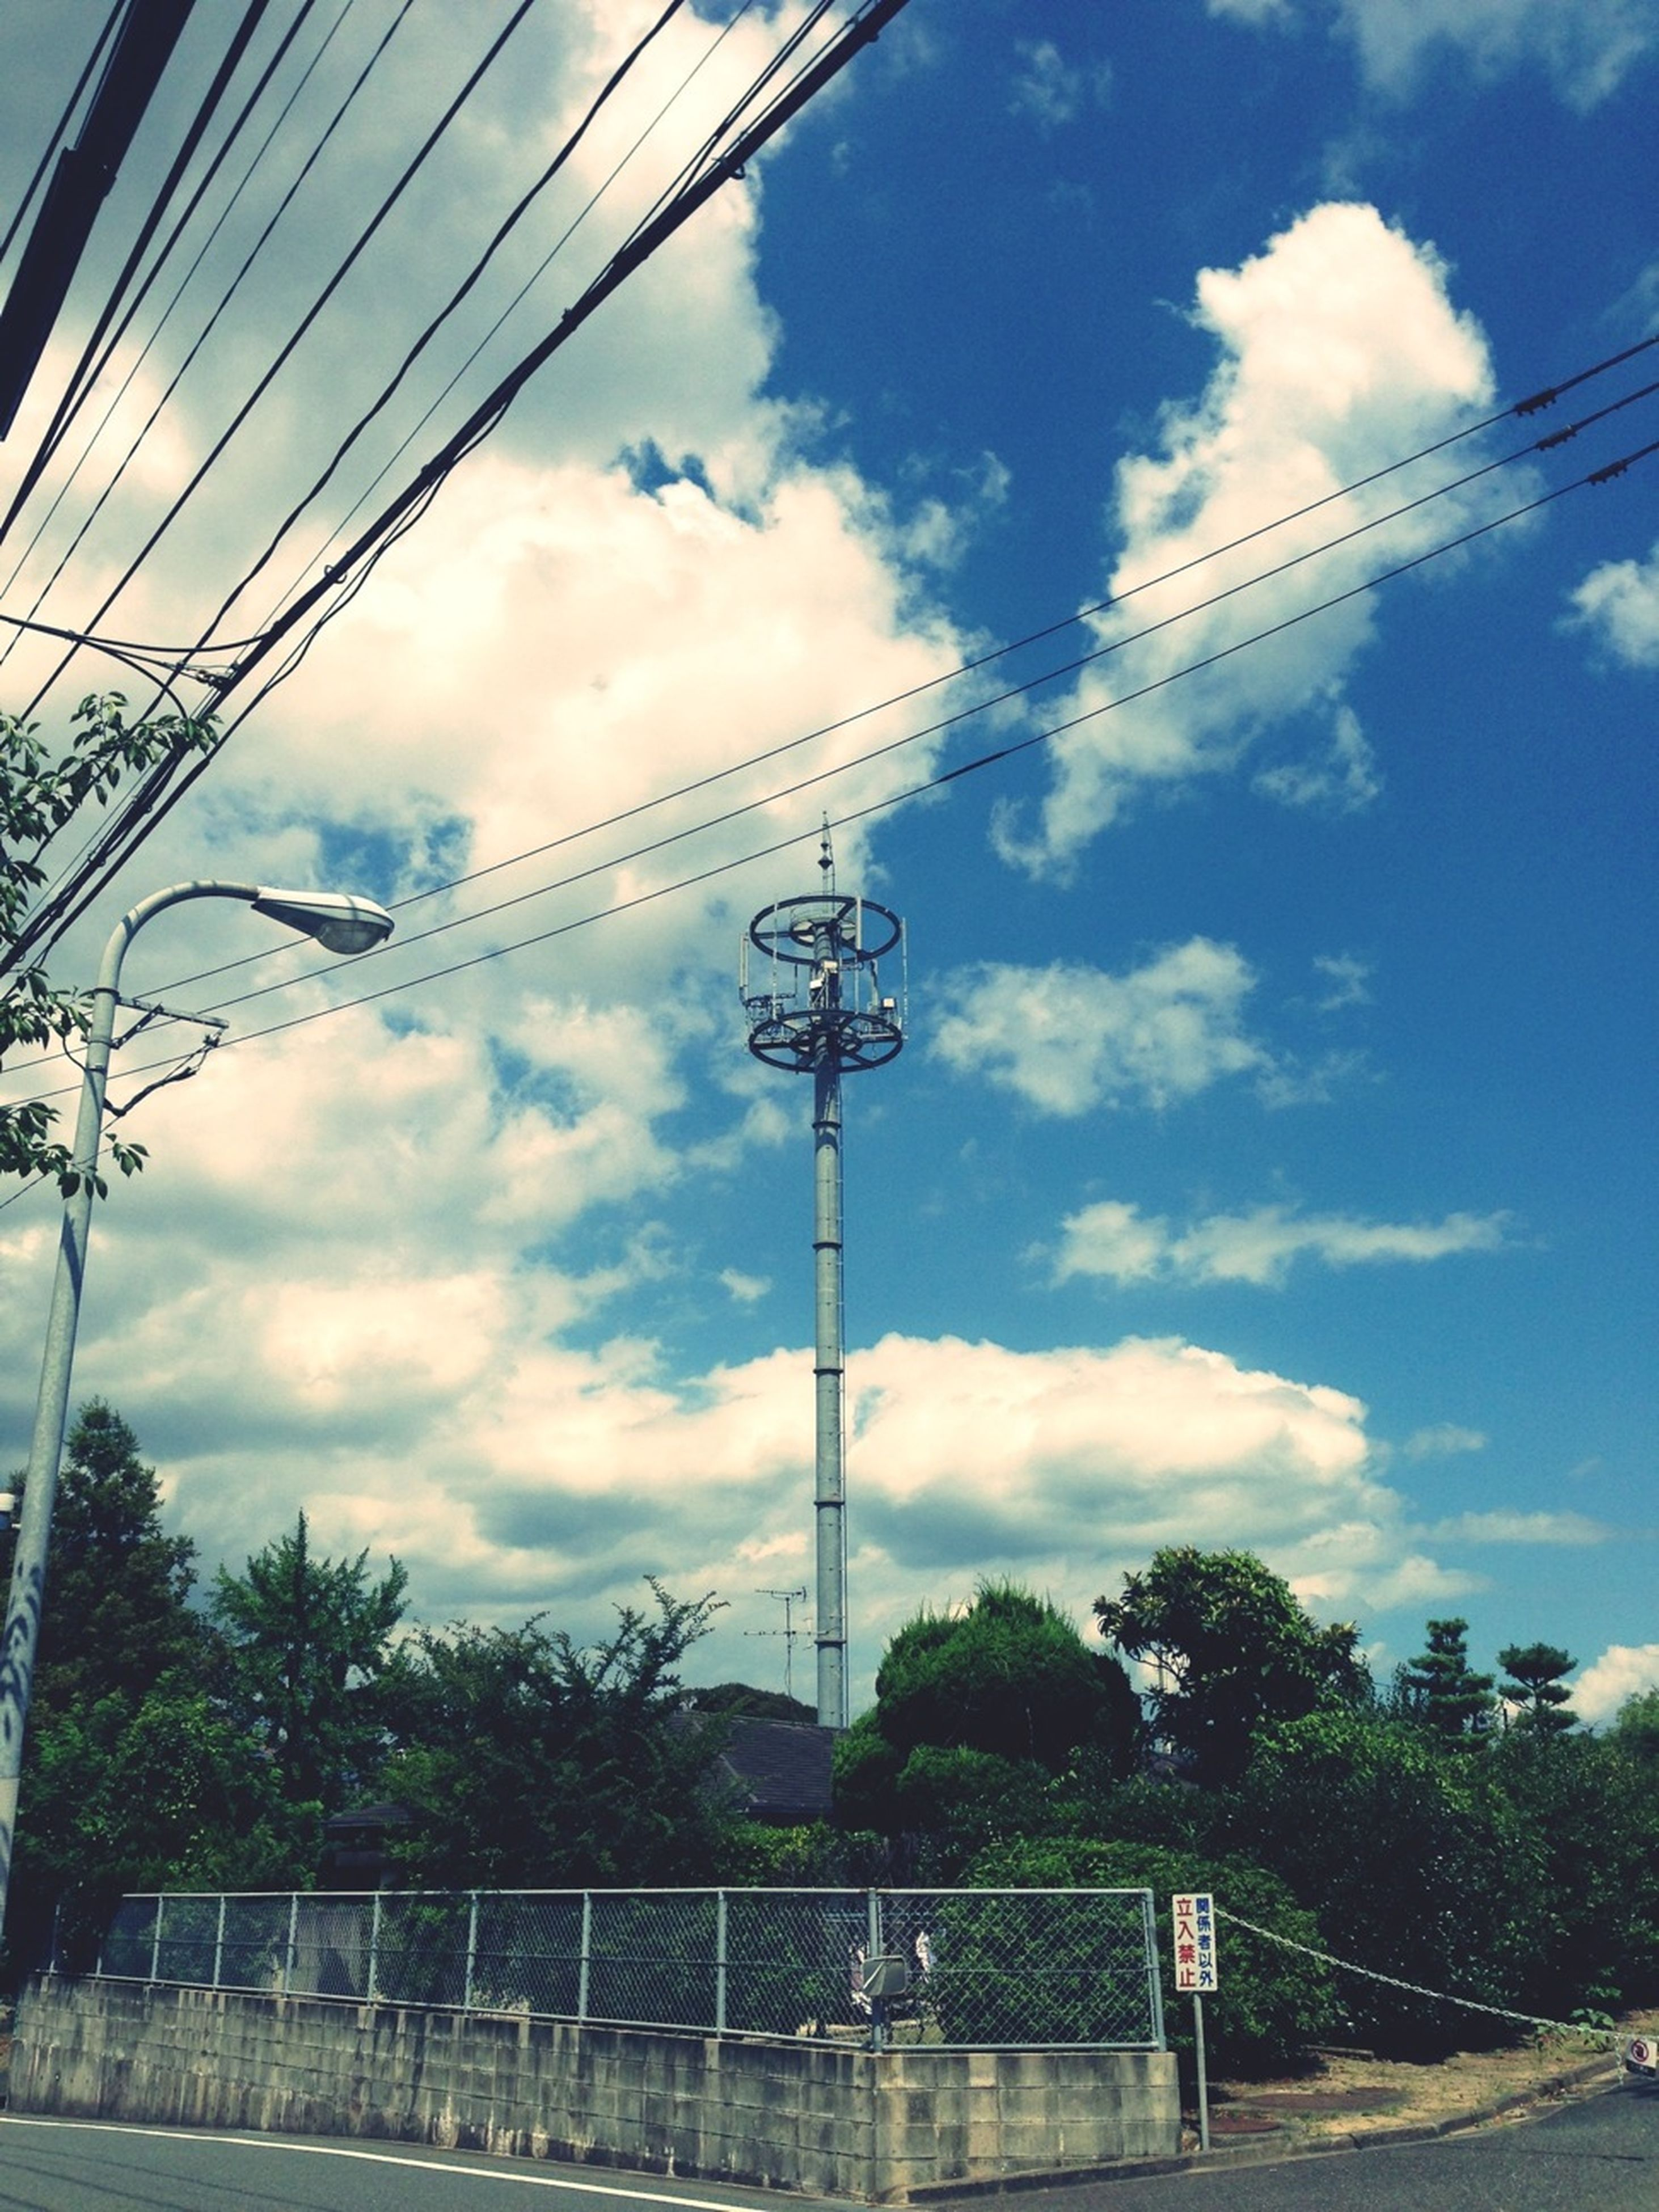 power line, electricity pylon, sky, cable, power supply, electricity, connection, cloud - sky, transportation, cloud, cloudy, fuel and power generation, power cable, street light, tree, low angle view, technology, mode of transport, railroad track, road